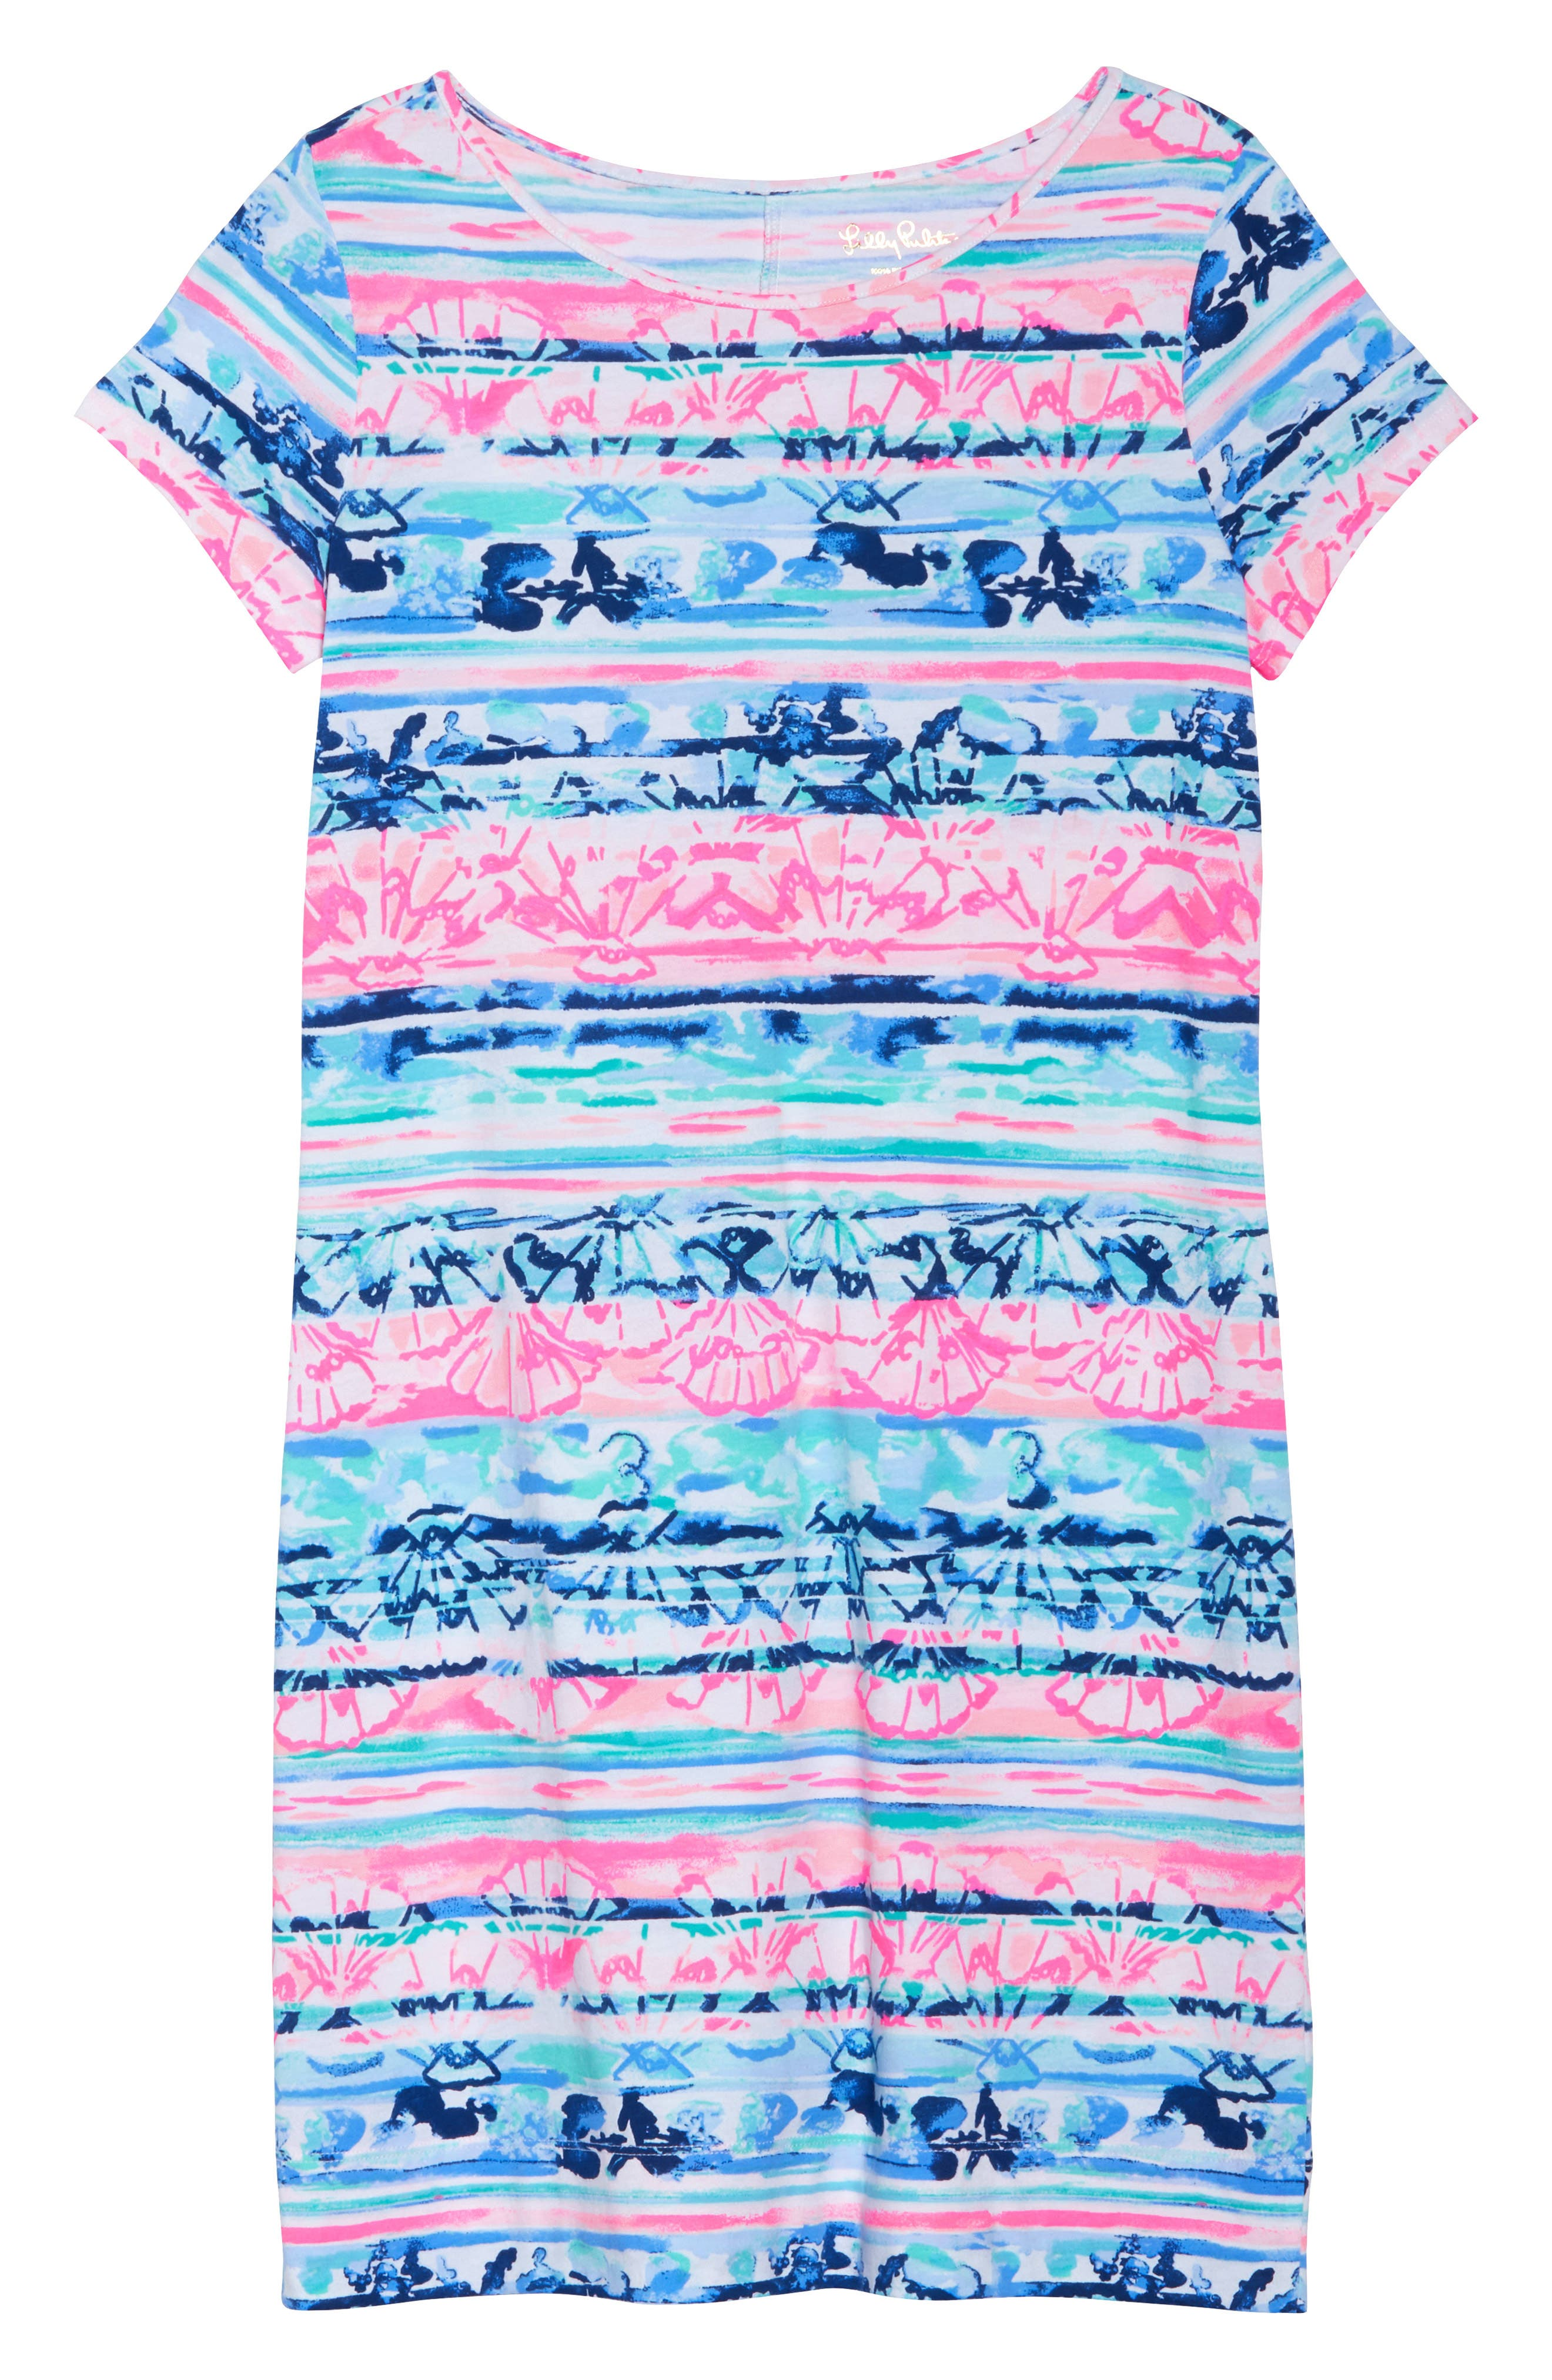 Marlowe T-Shirt Dress,                             Alternate thumbnail 6, color,                             Multi A Wave From It